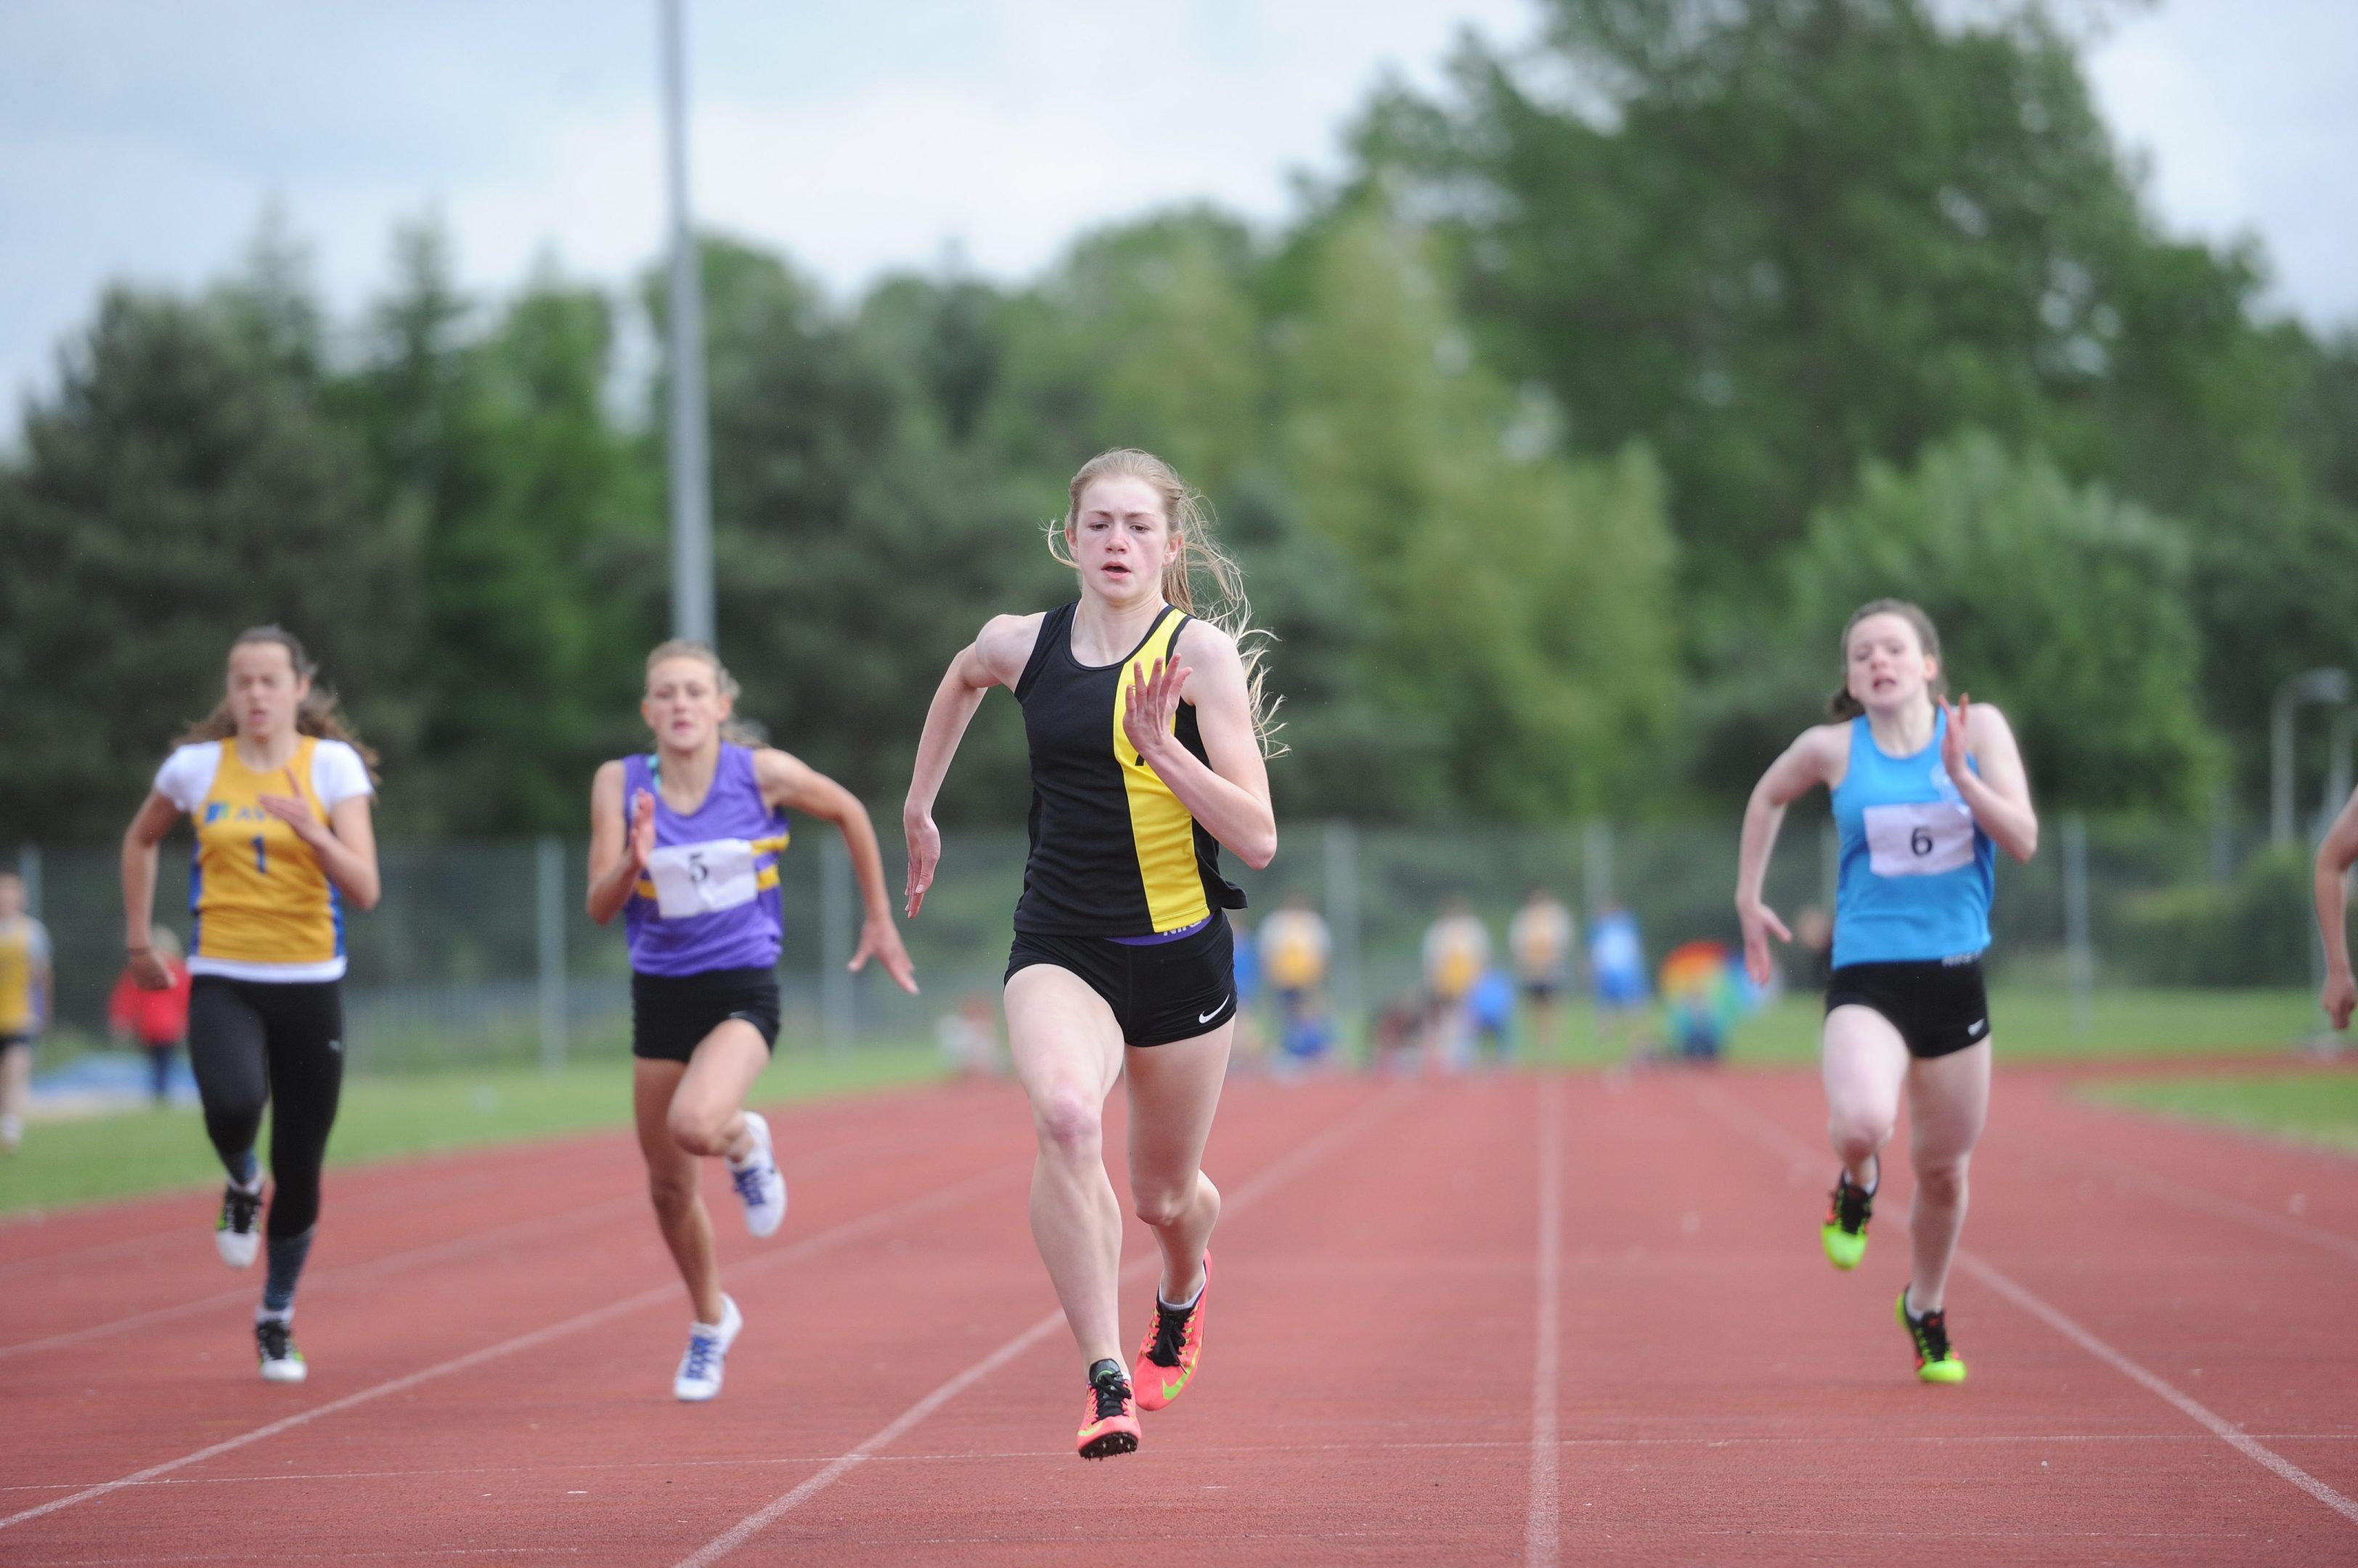 Action from one of the girl's 100m races at the Perth and Kinross Secondary Schools County Sports Championships.